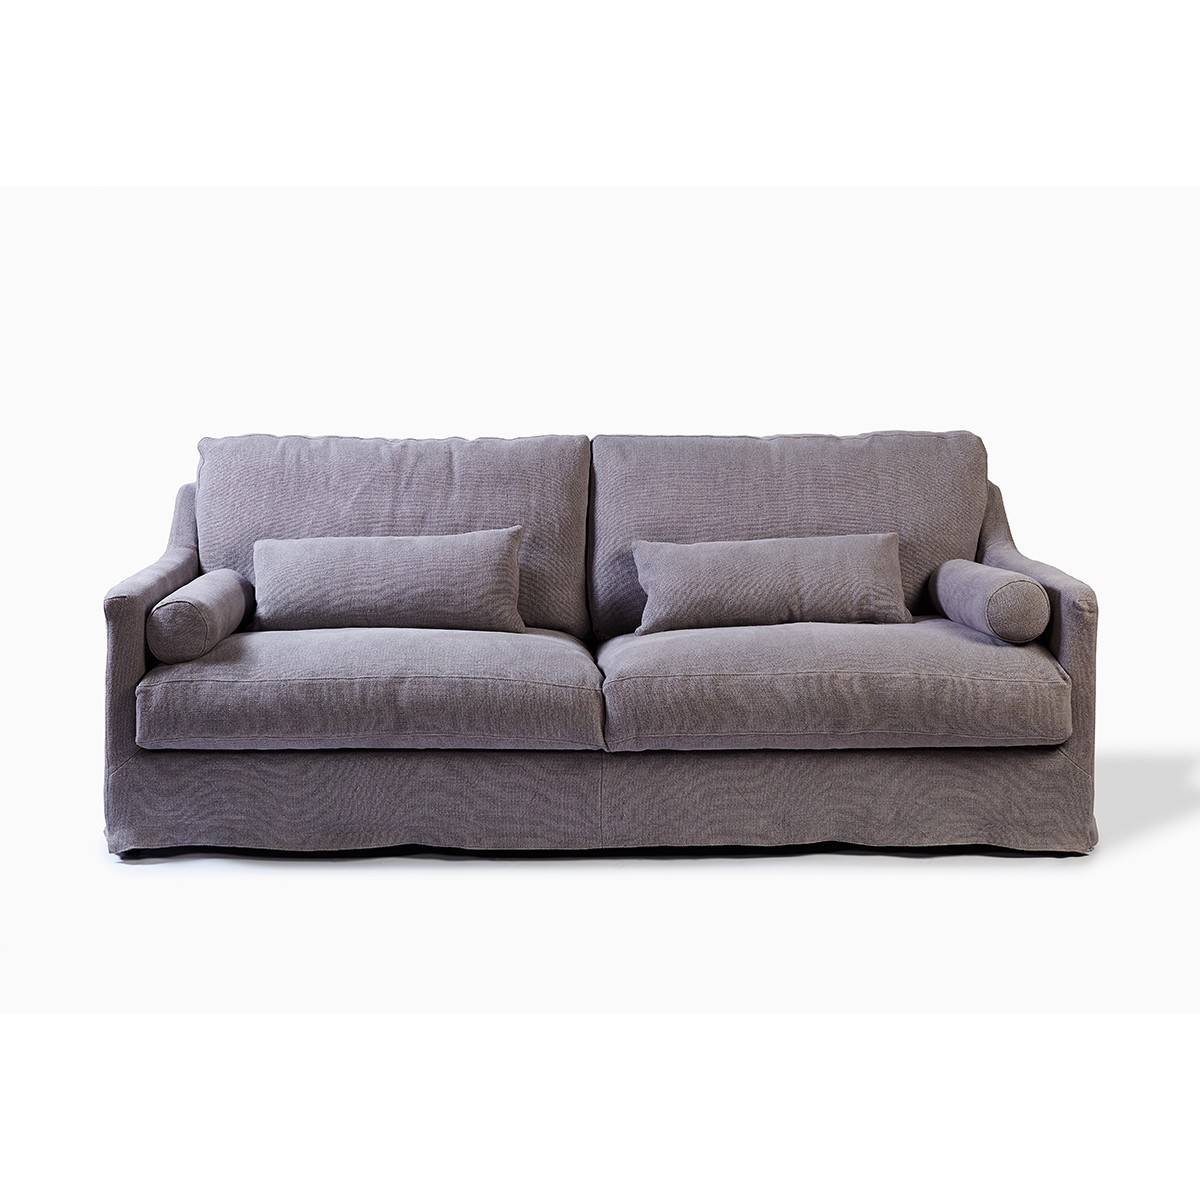 Comprar Sofas Online Comprar Sofa Online Cheap Ae Sofa Set With Comprar Sofa